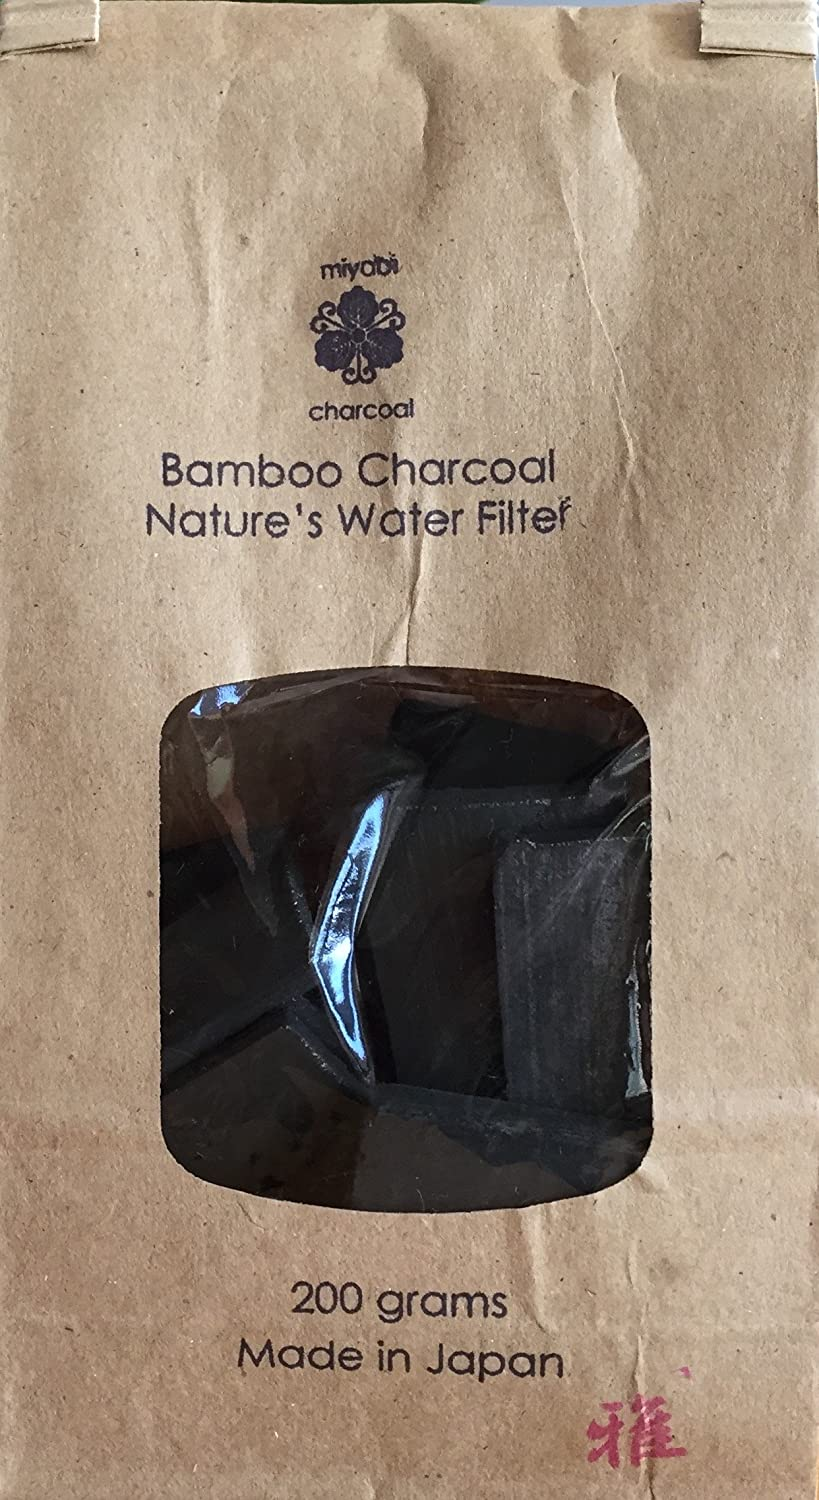 Mirana 6 Sticks Bamboo Charcoal Water Filter Glass /& More Natures Charcoal Filter for Tap Water- All Natural Water Purification Filter for Pitchers Tasty Water